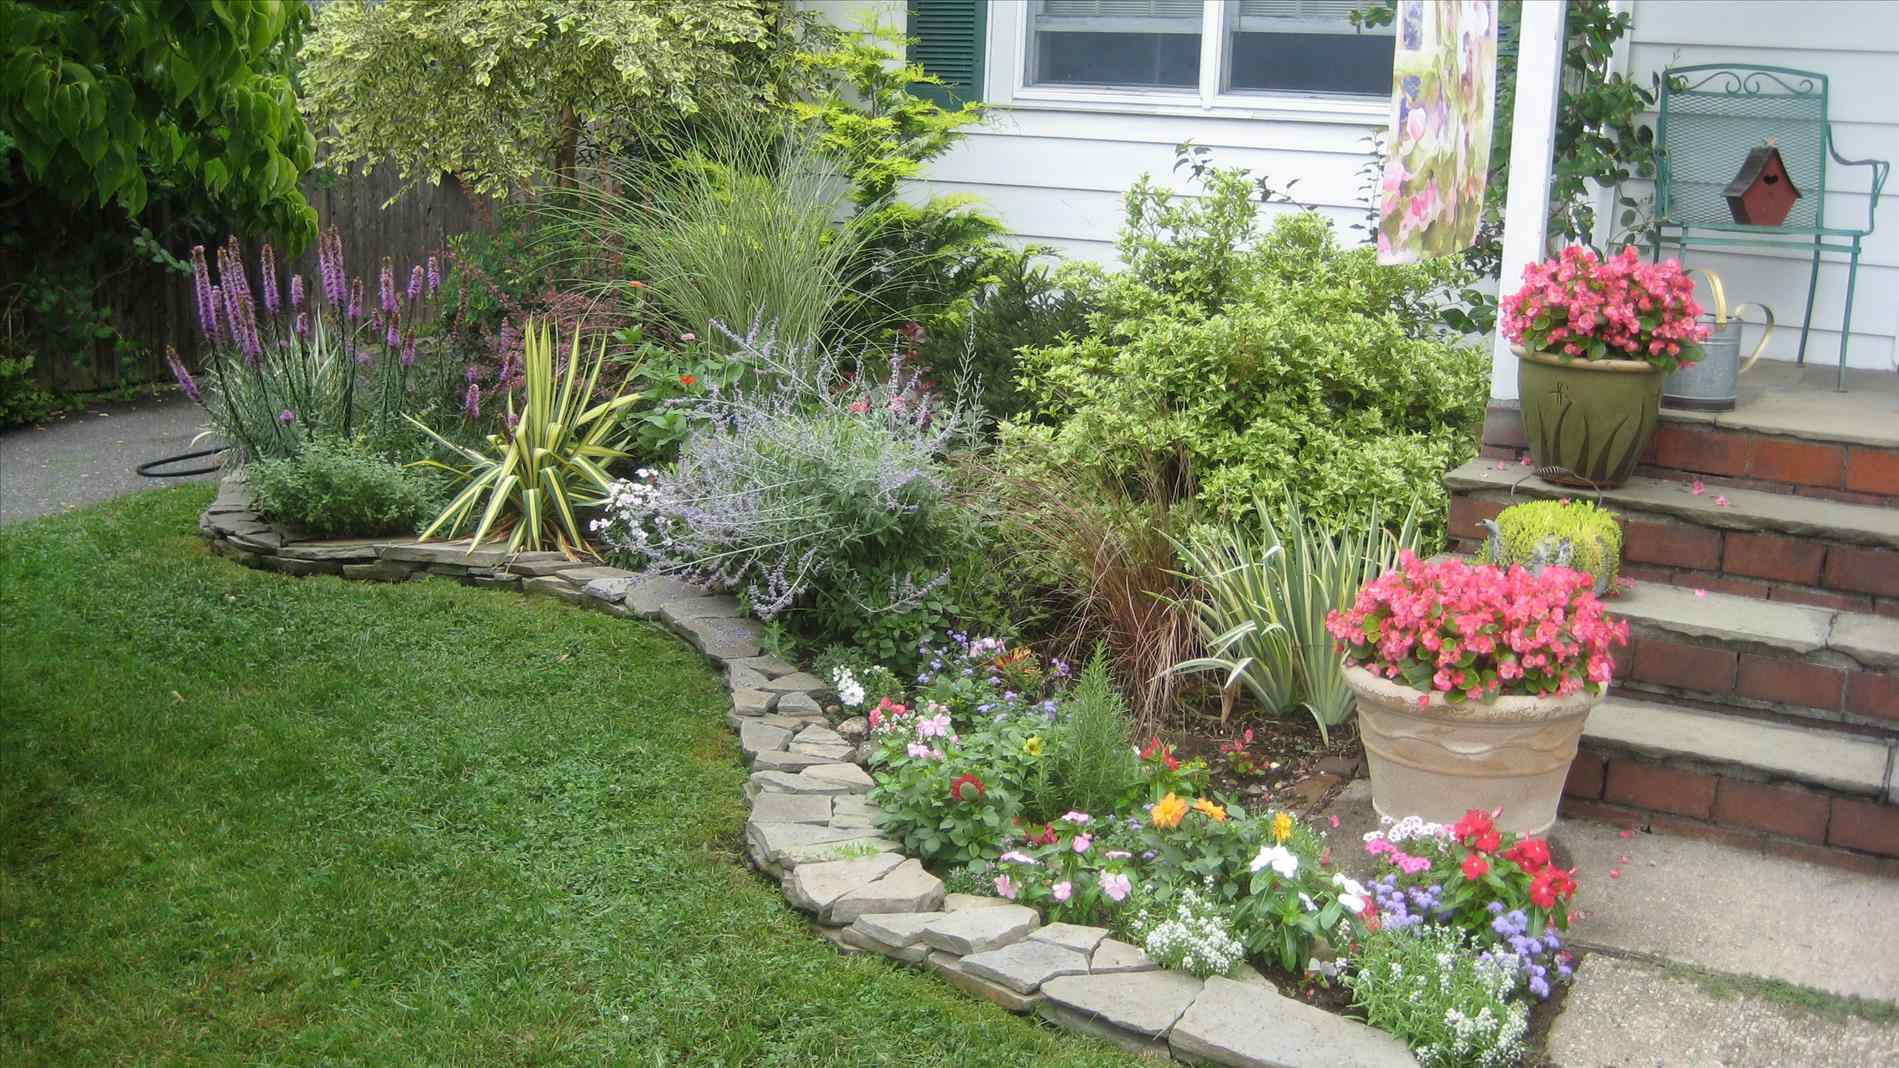 Home Depot Landscape Edging | Lowes Edging Stones | Ecoborder